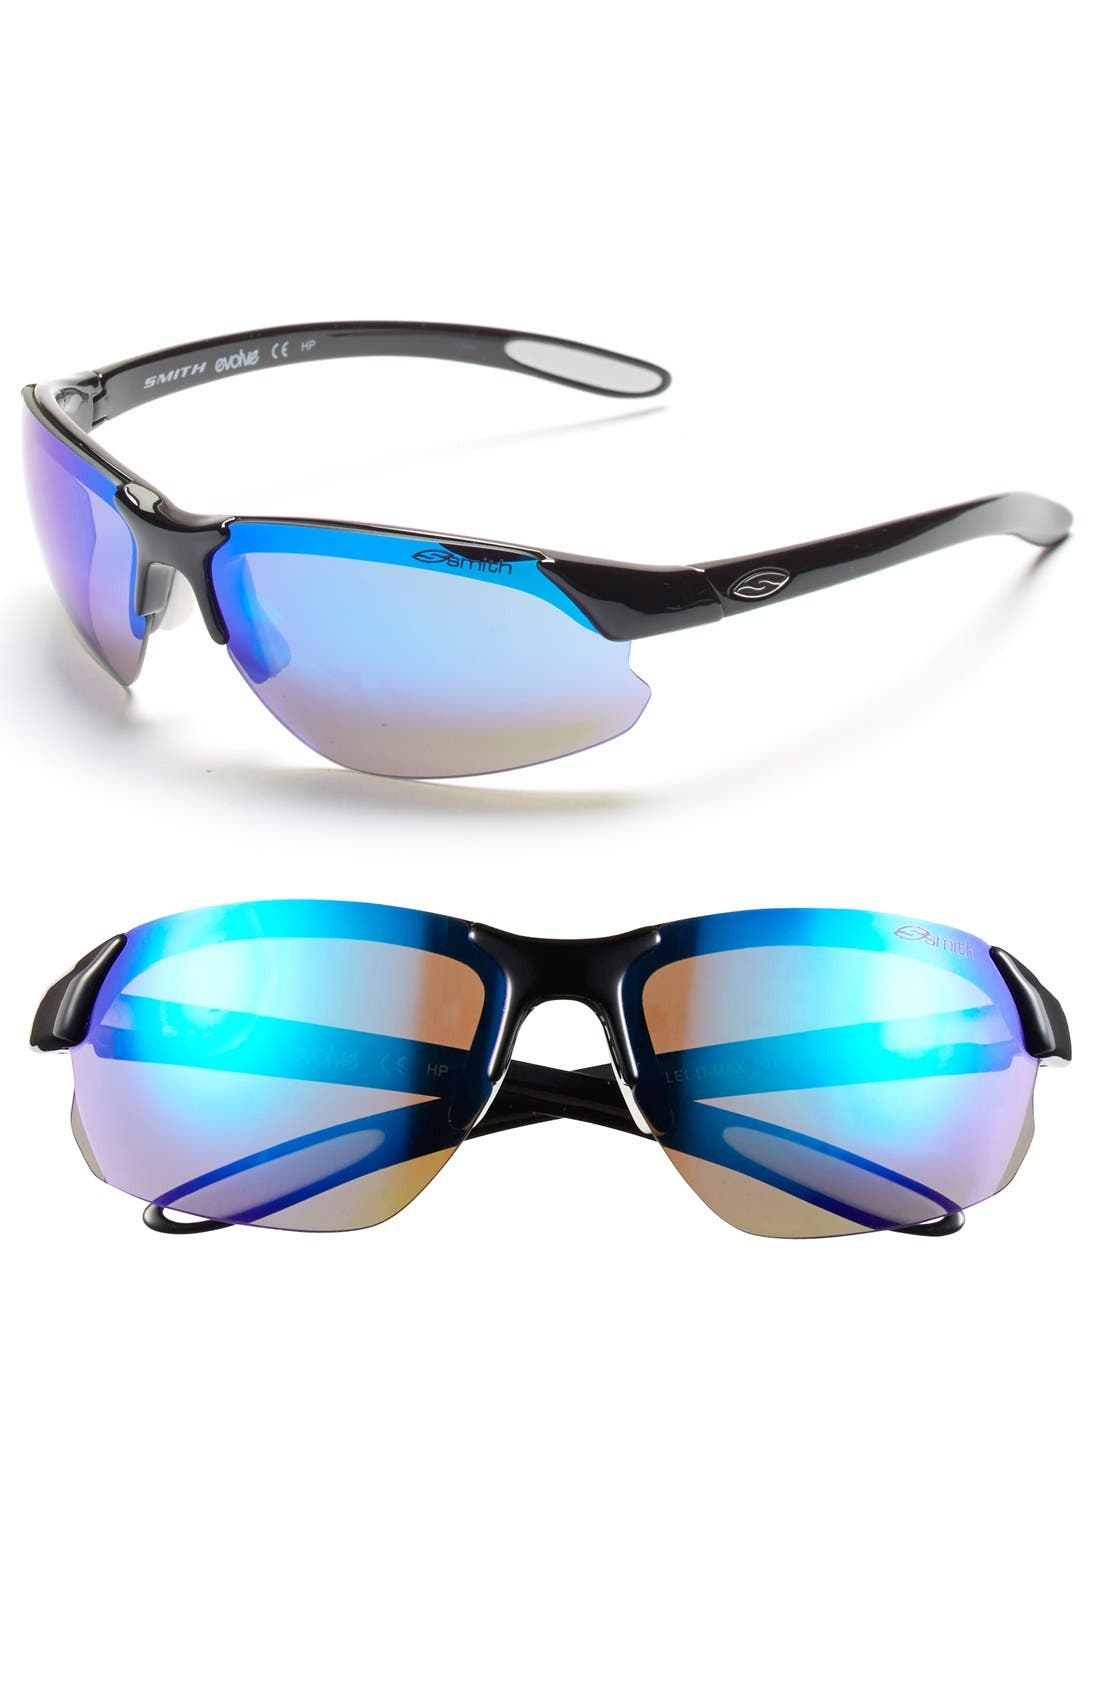 'PARALLEL D MAX' 65MM POLARIZED SUNGLASSES - BLACK WHITE/ BLUE/ CLEAR